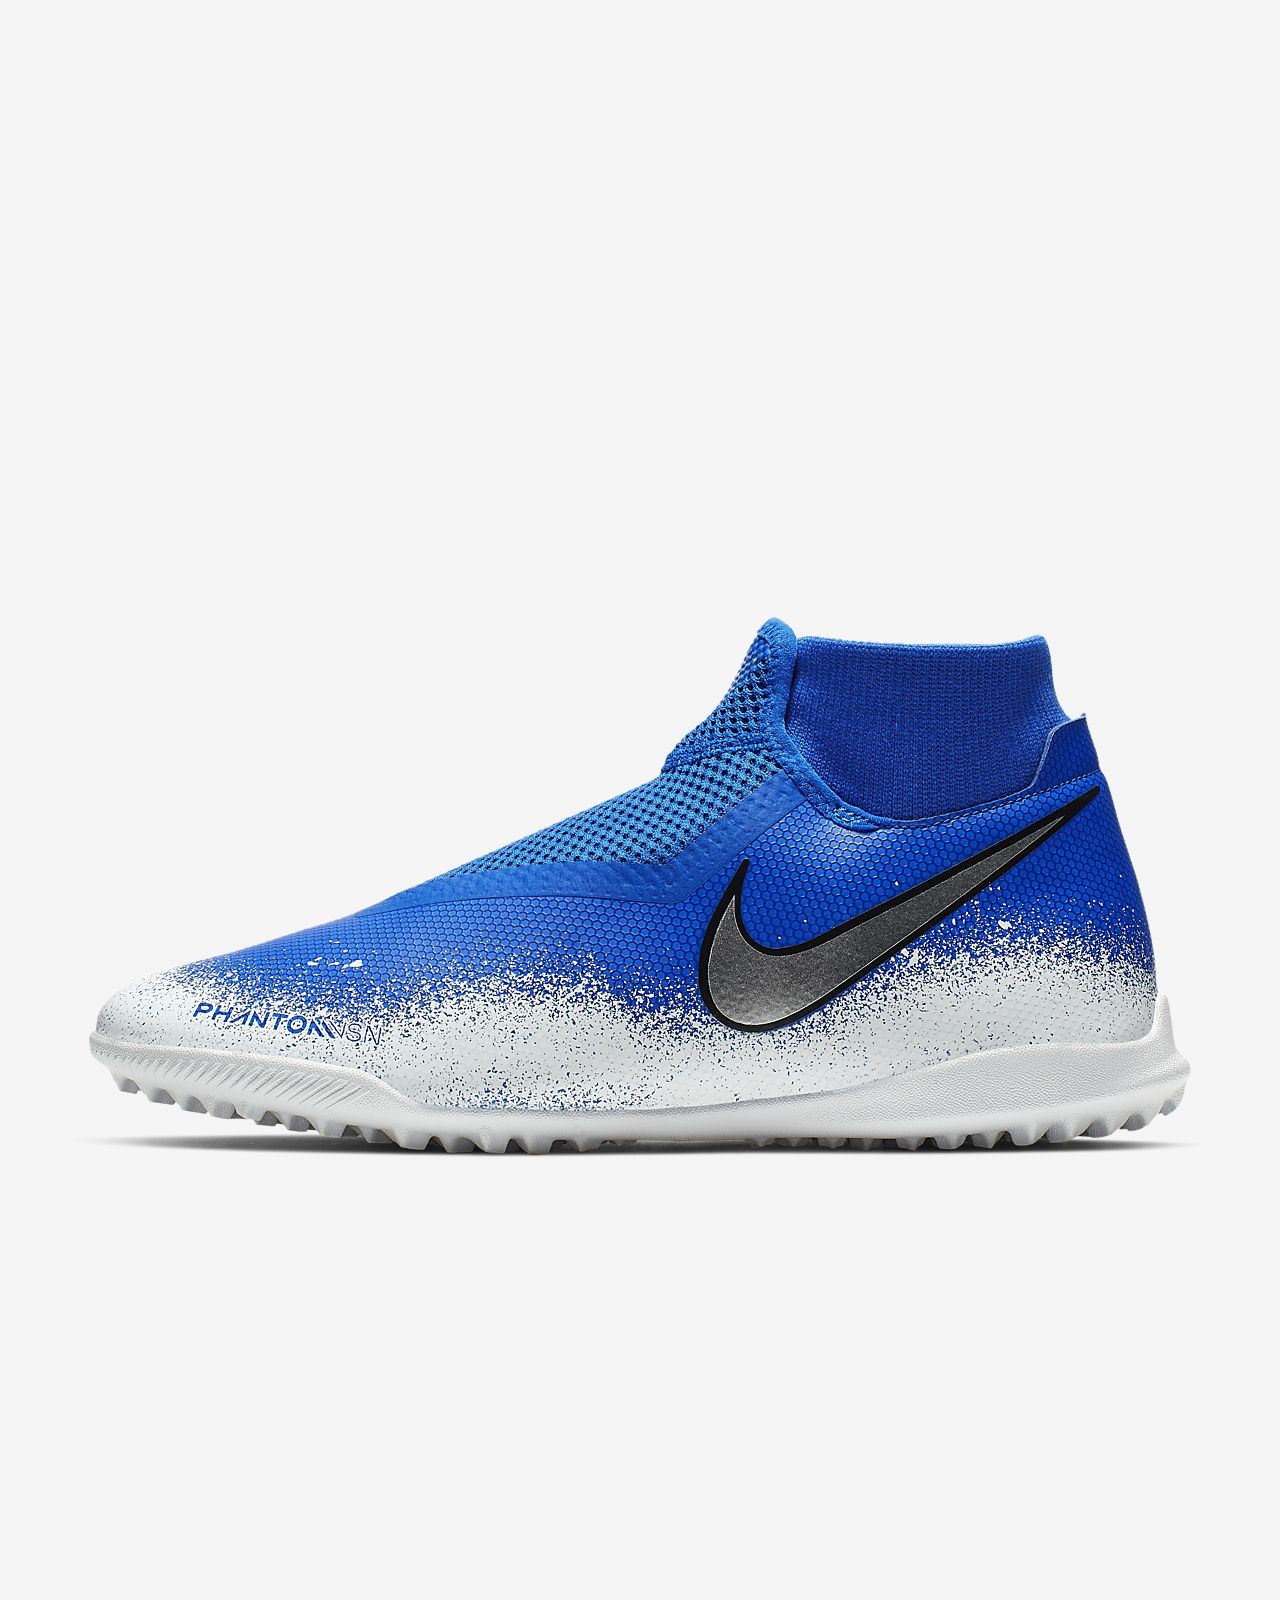 info for 1c5bb 15b12 ... Chaussure de football pour surface synthétique Nike Phantom Vision  Academy Dynamic Fit